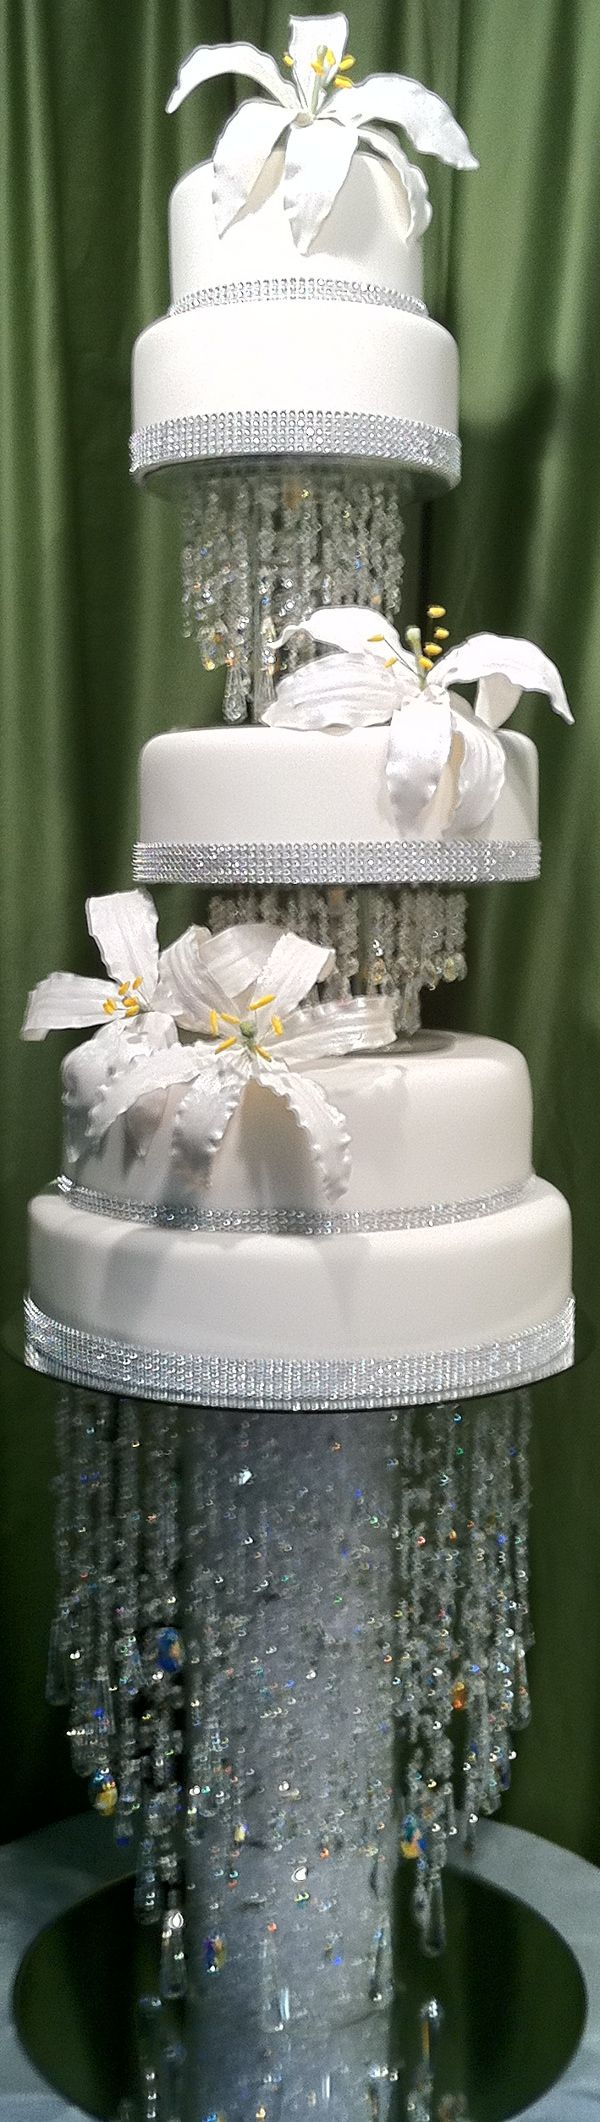 wedding cakes with waterfalls beautiful cakes white 26134